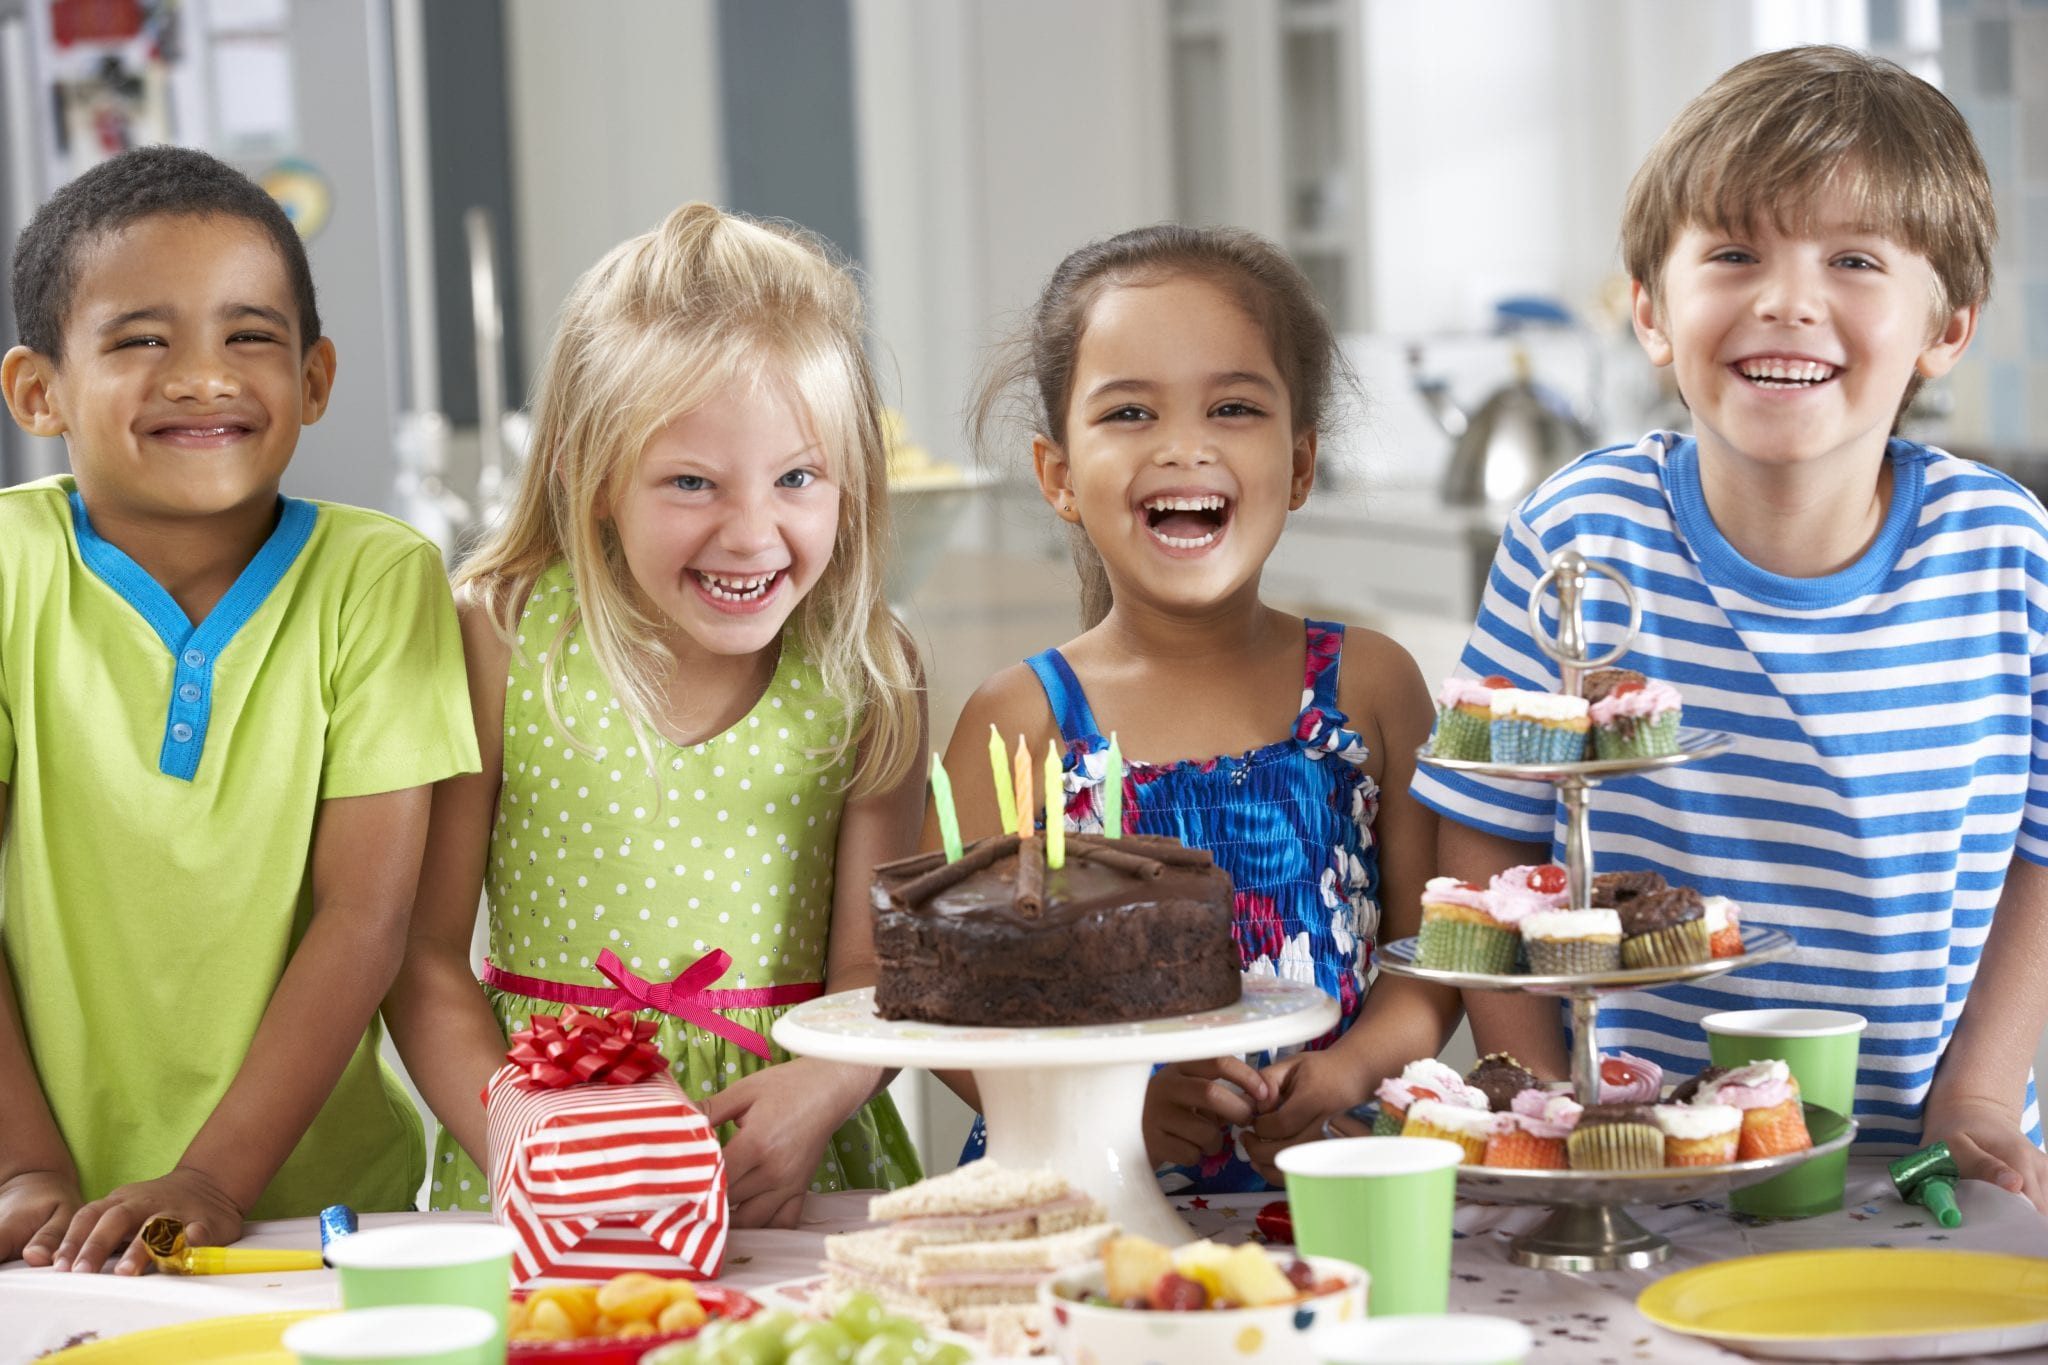 Best ideas about 1 Year Old Birthday Party Locations . Save or Pin 2019 Ultimate Guide to Kids Birthday Party Places in Now.